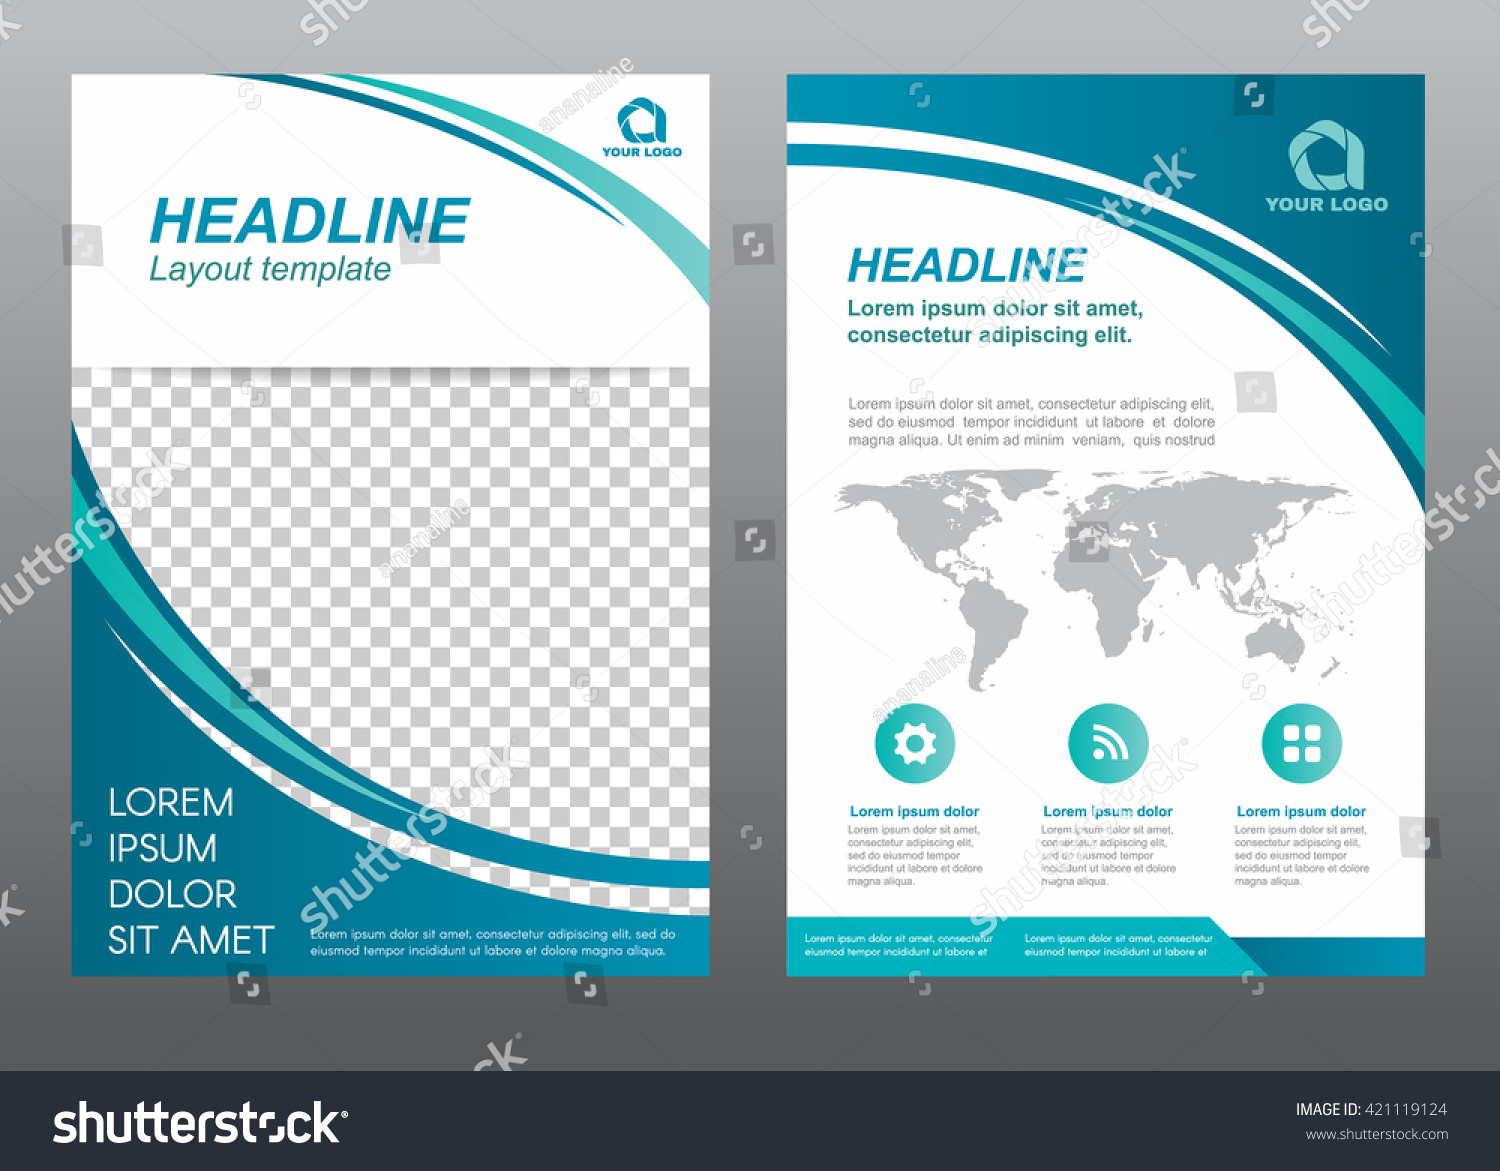 layout flyer template size a cover stock vector  layout flyer template size a4 cover page curve blue tone vector design